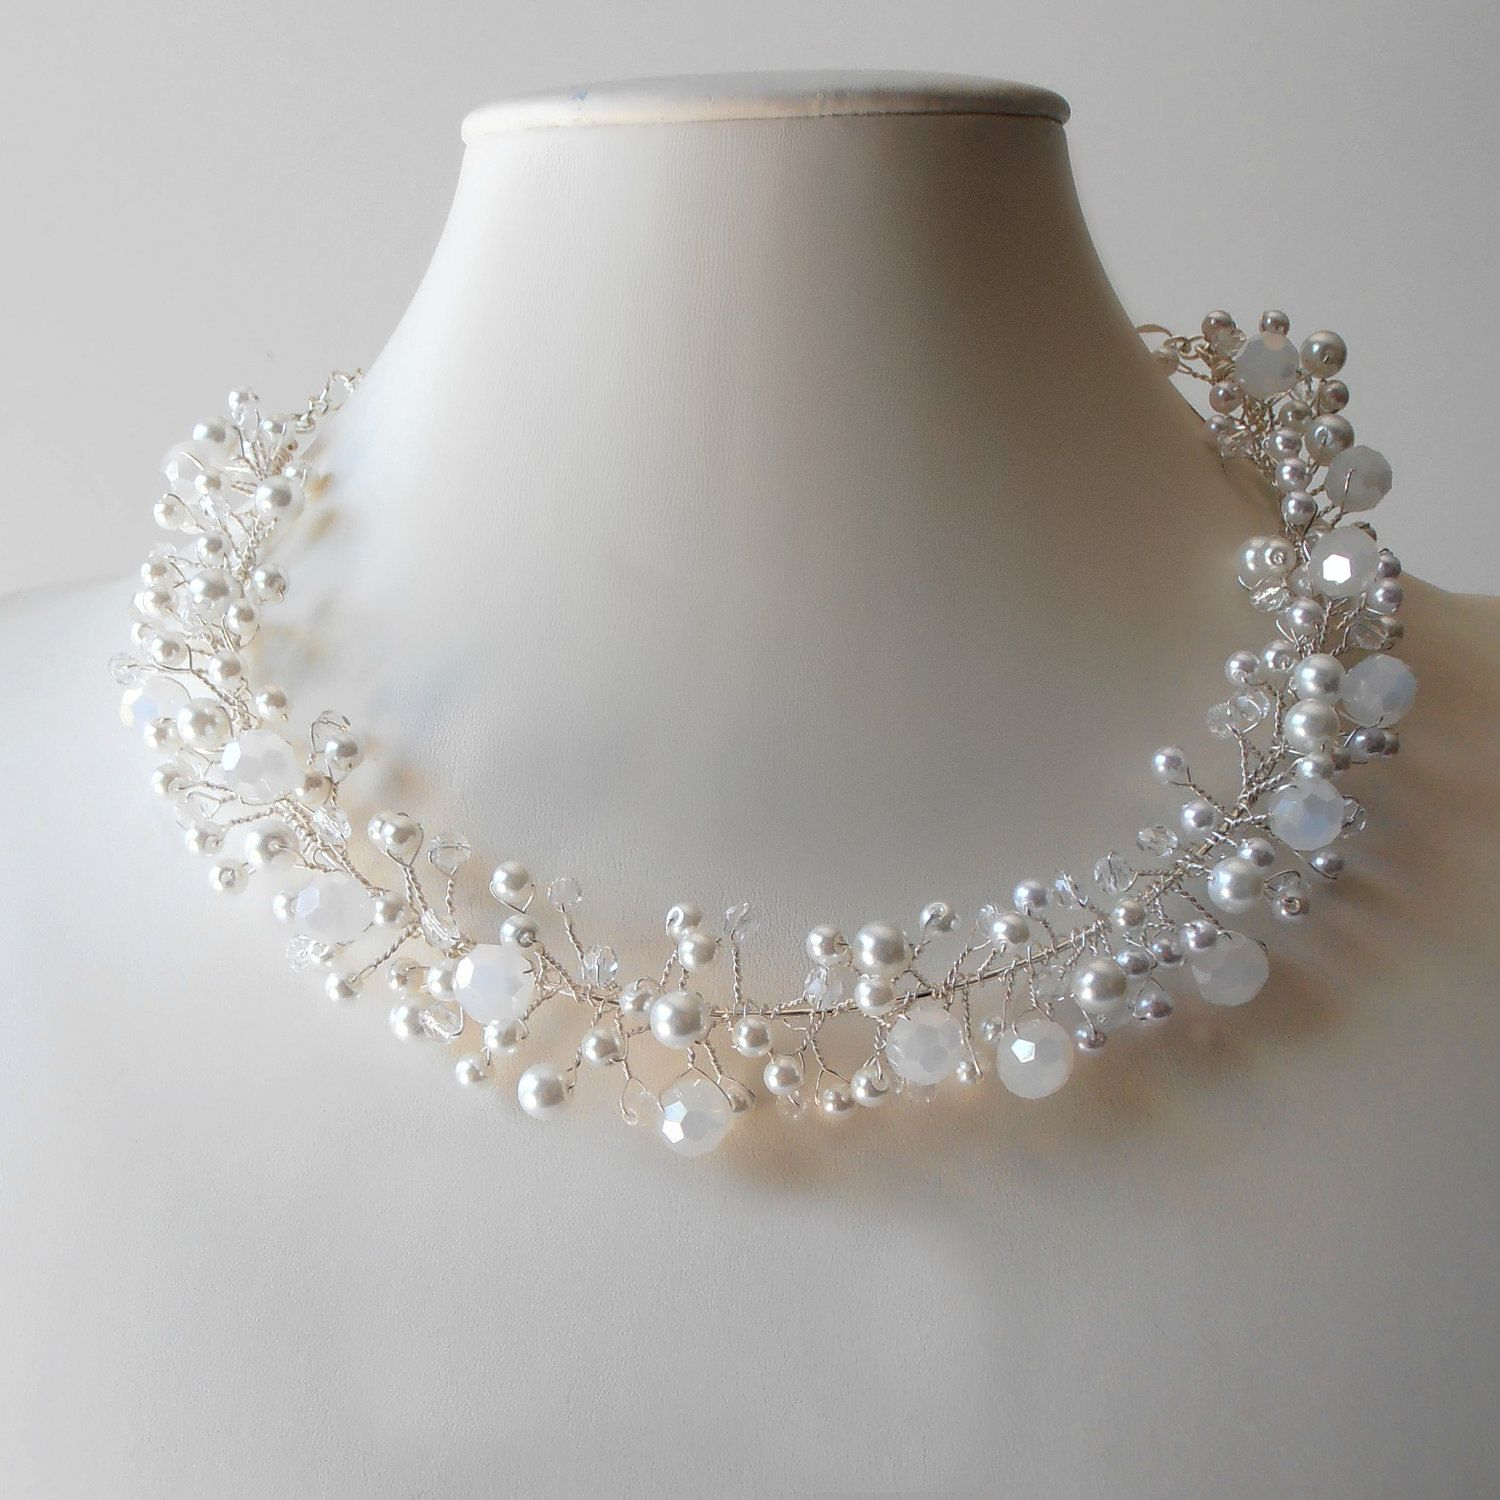 Bridal Jewelry Beaded Wire Necklace White and Silver Bridal